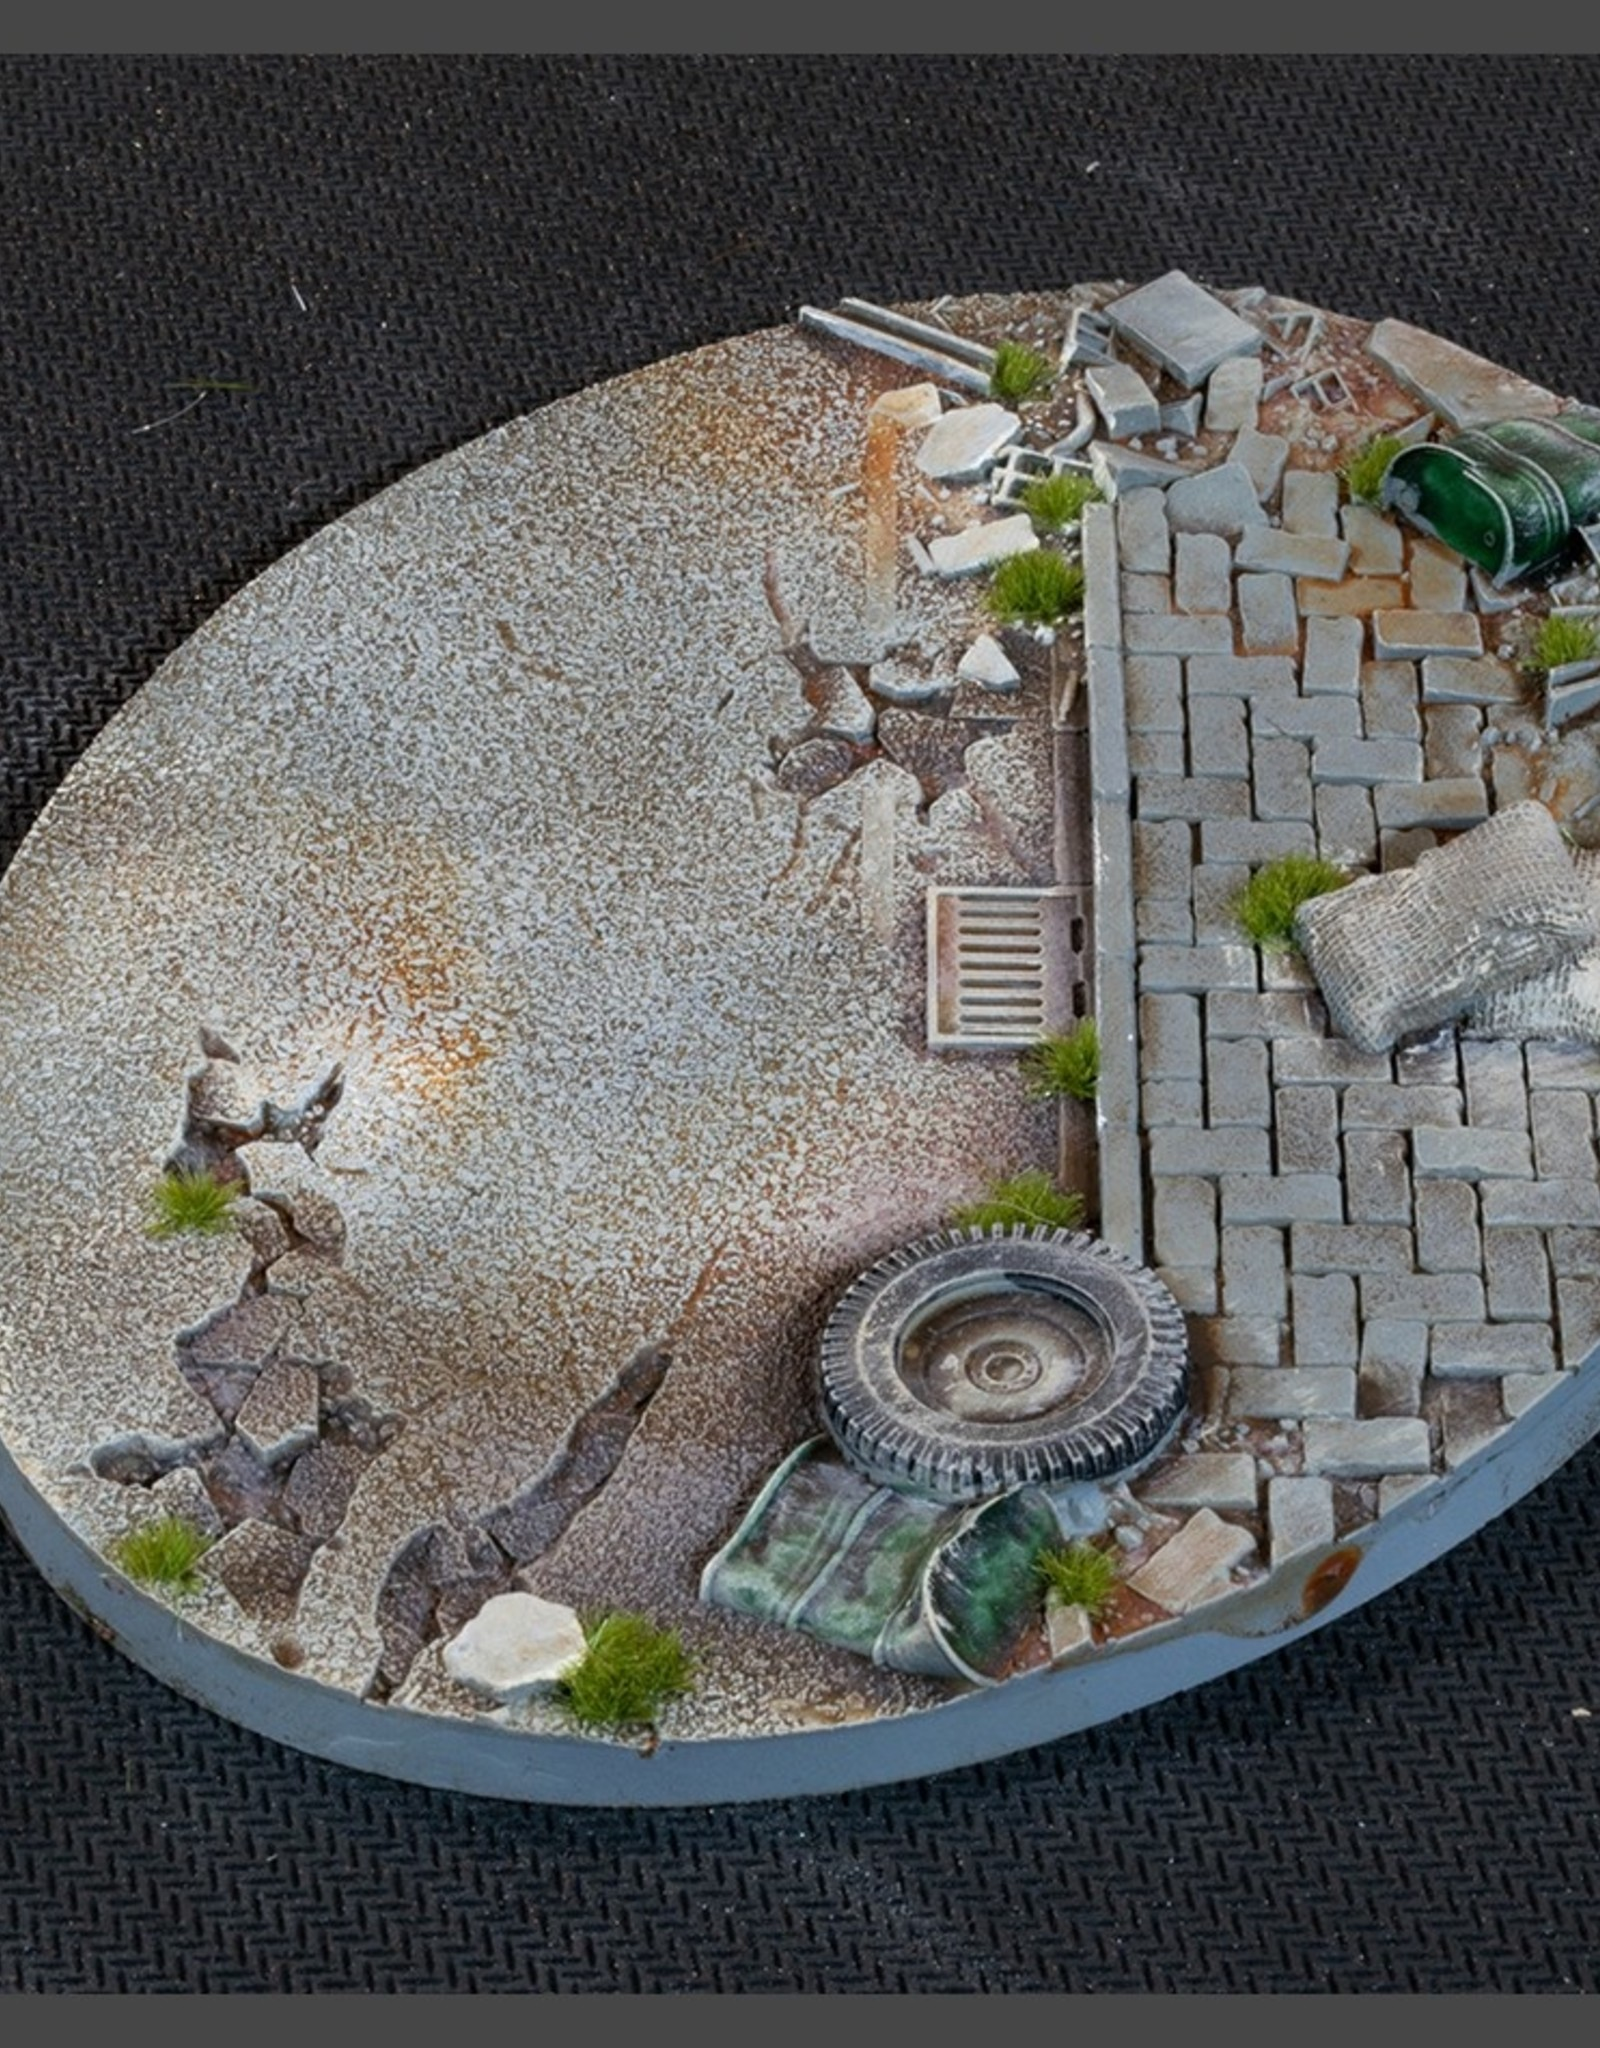 Gamers Grass Urban Warfare Bases Pre-Painted (1x 120mm Oval)